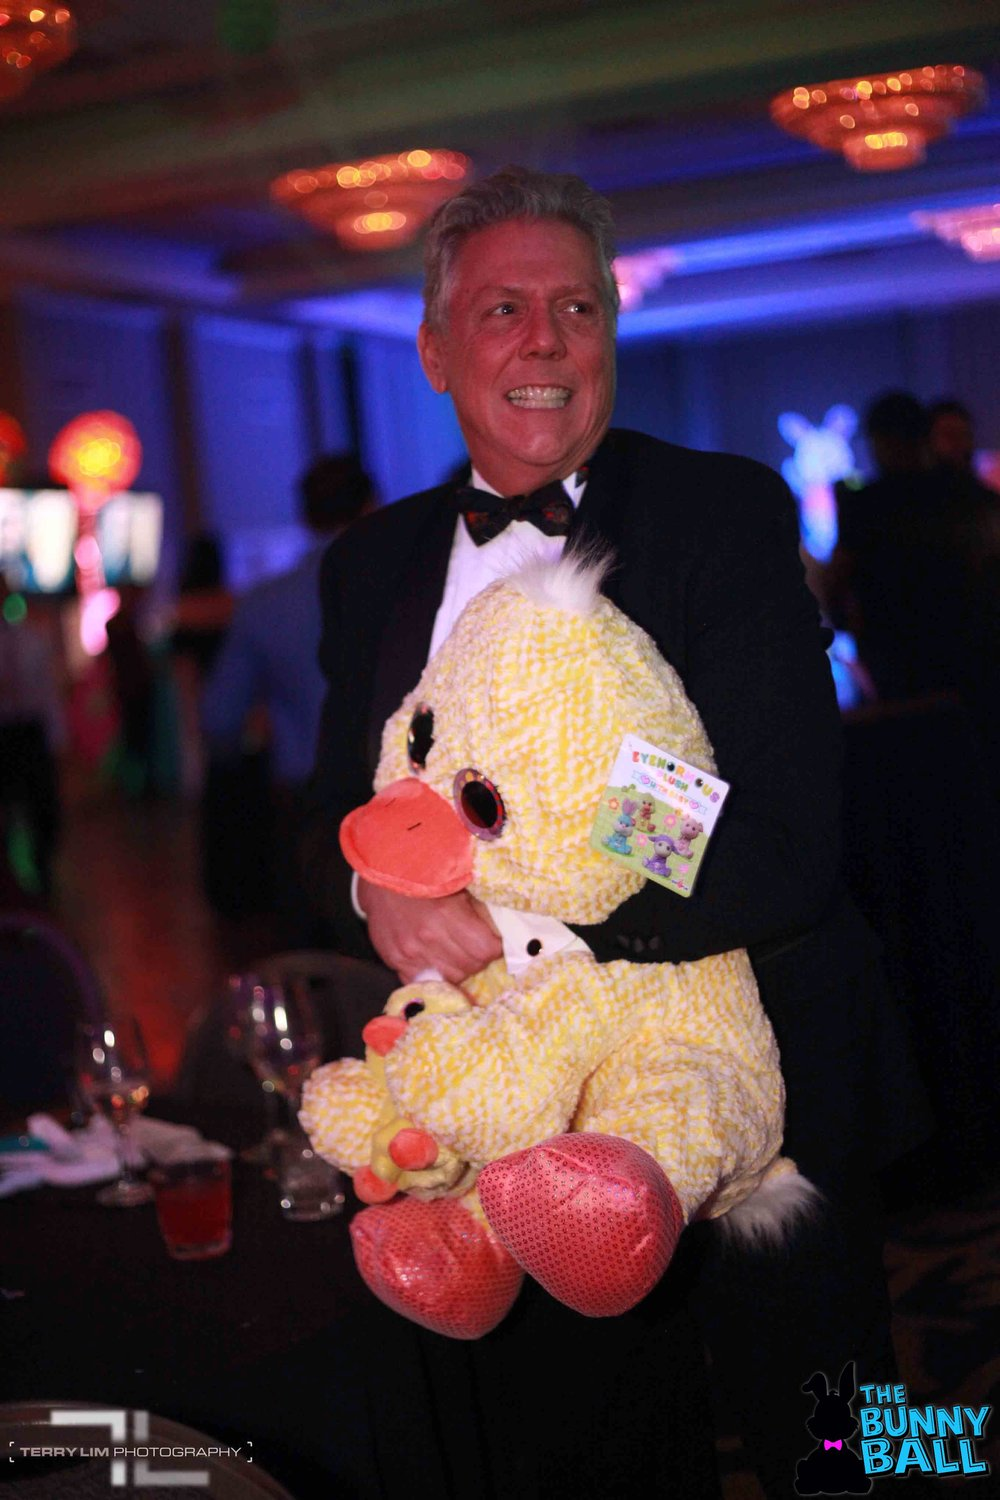 Terry_Lim_Photography_Bunny_Ball_2017 - 176.jpg